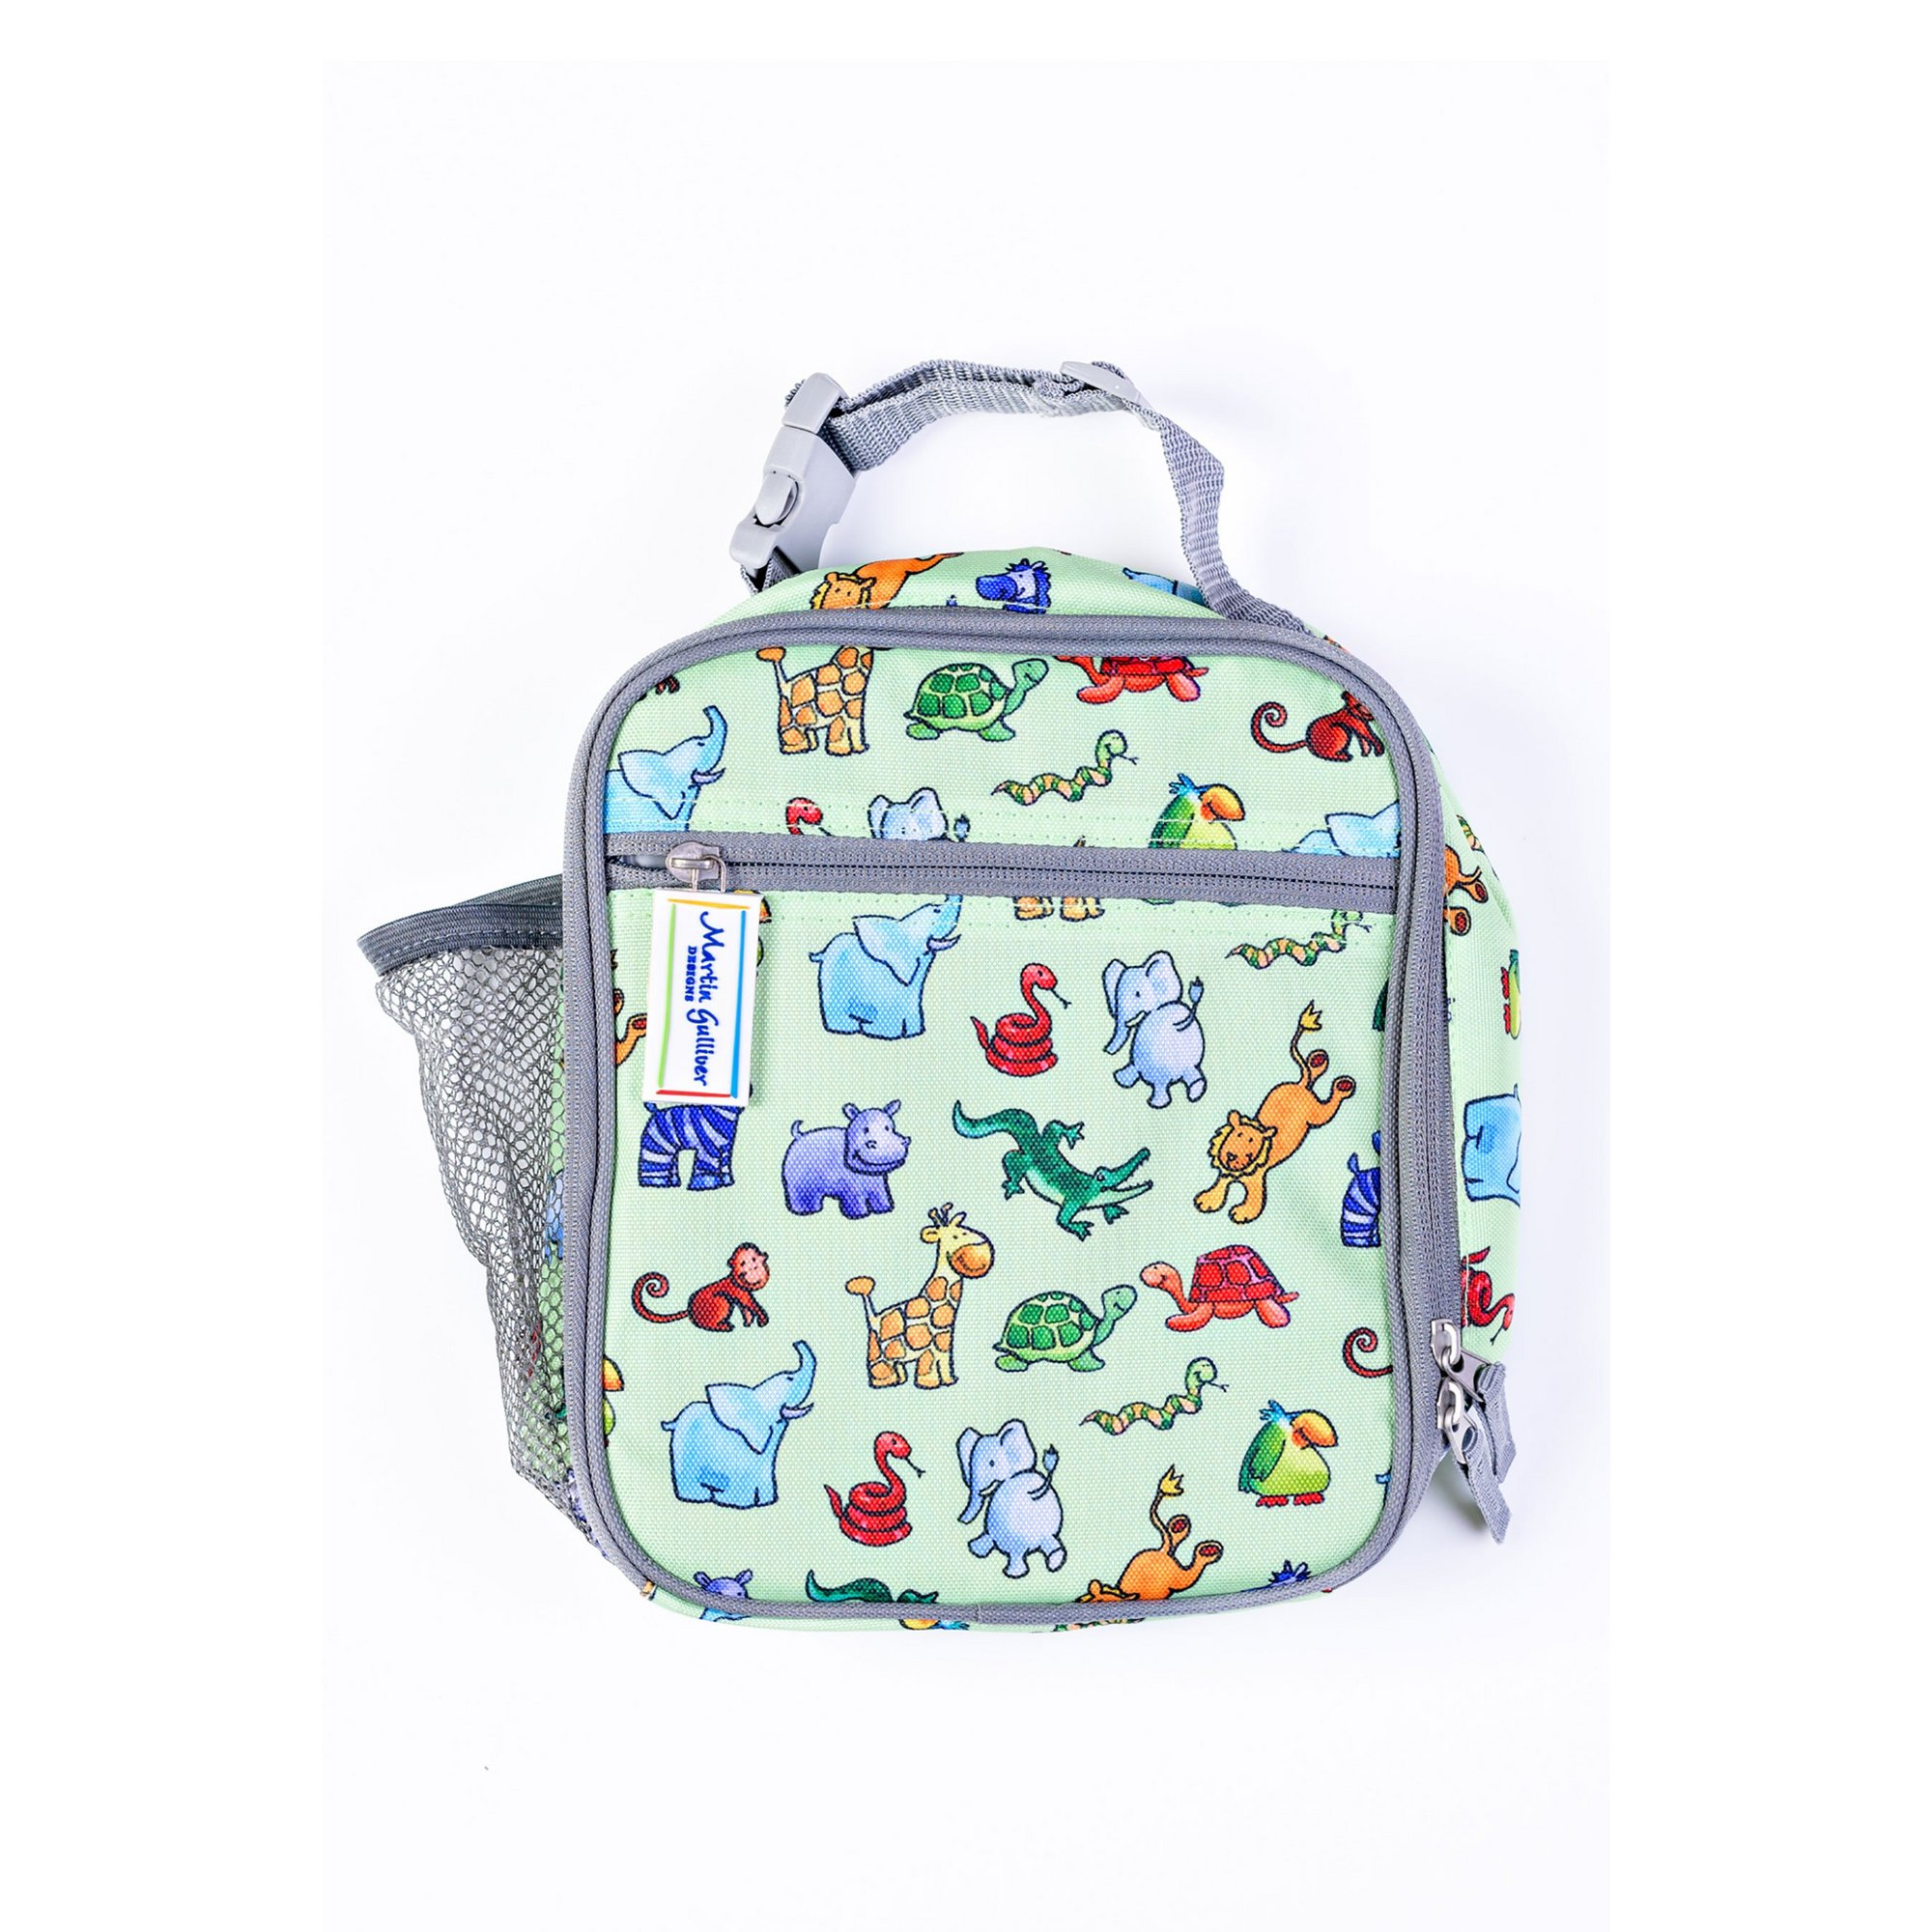 Image of Jungle Friends Lunch Bag by Martin Gulliver